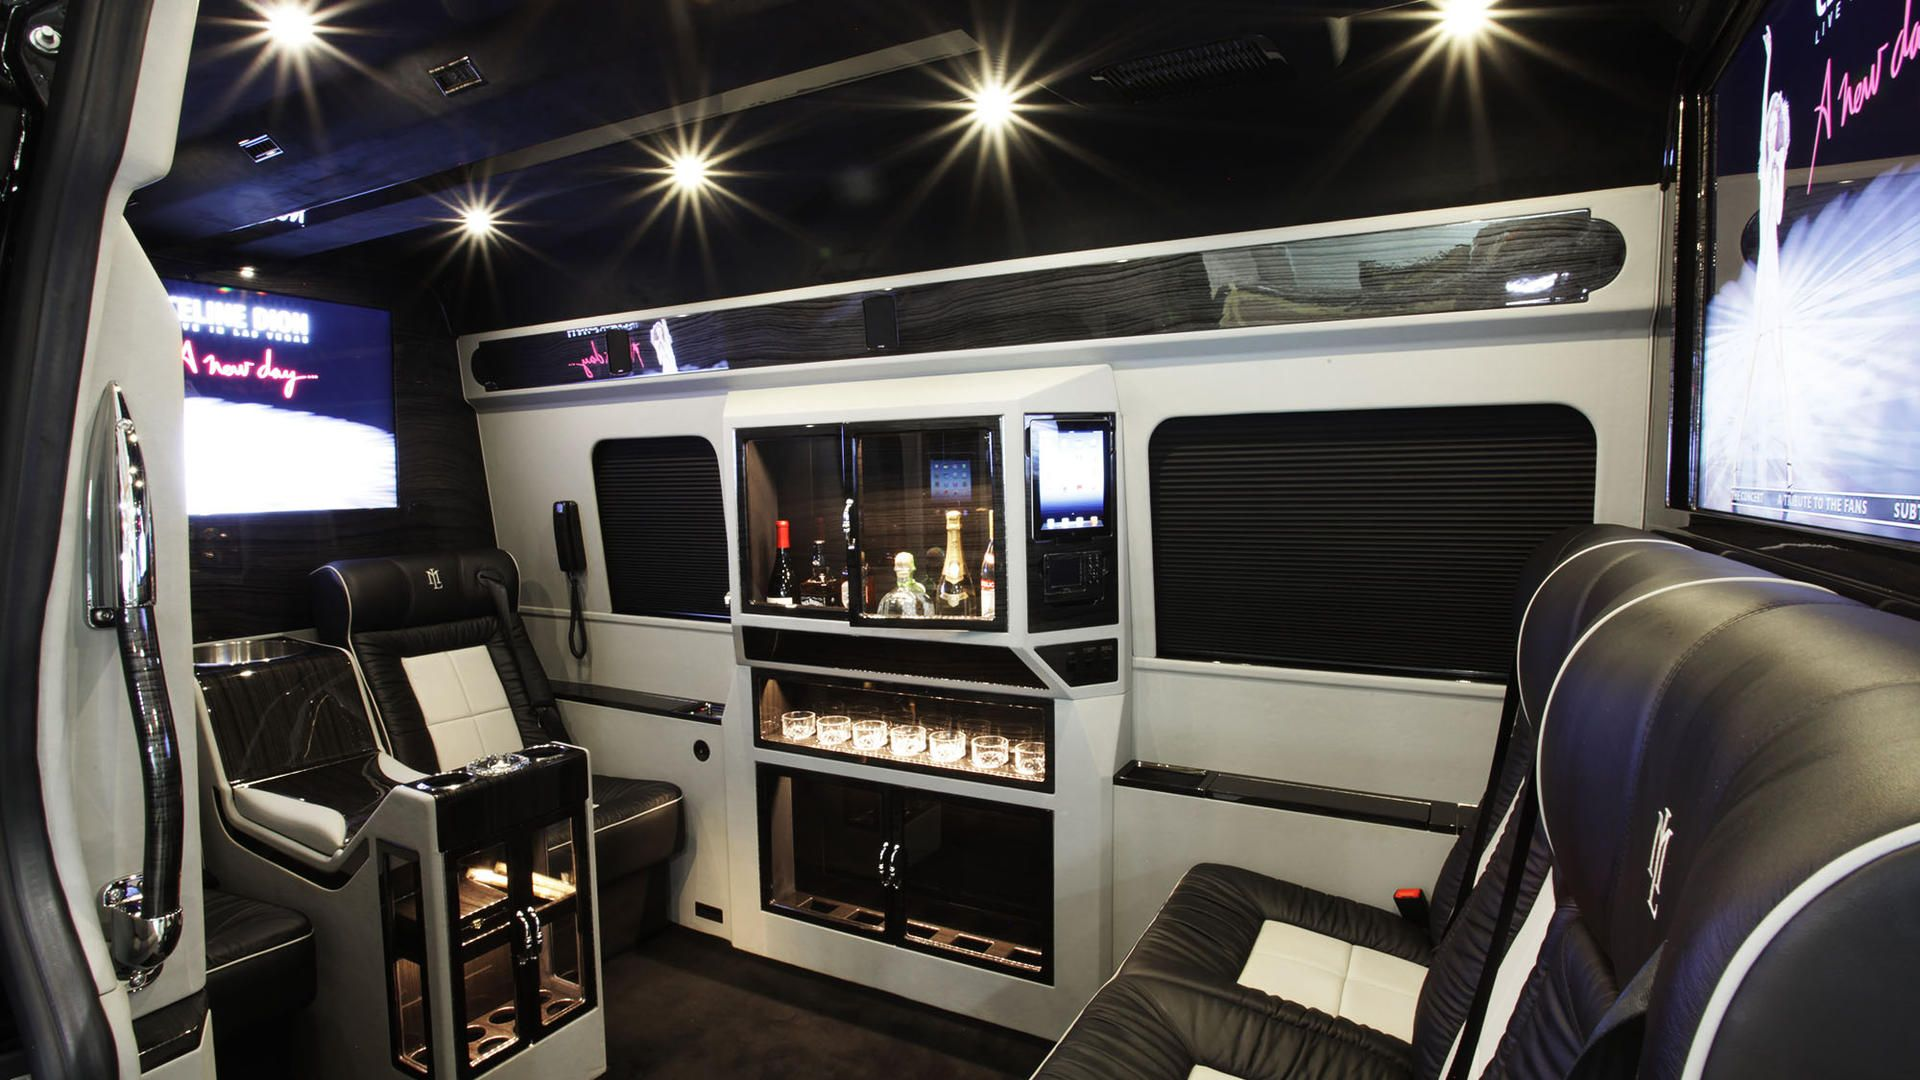 custom luxury suv pictures luxury conversion vans interior suv pinterest van interior. Black Bedroom Furniture Sets. Home Design Ideas